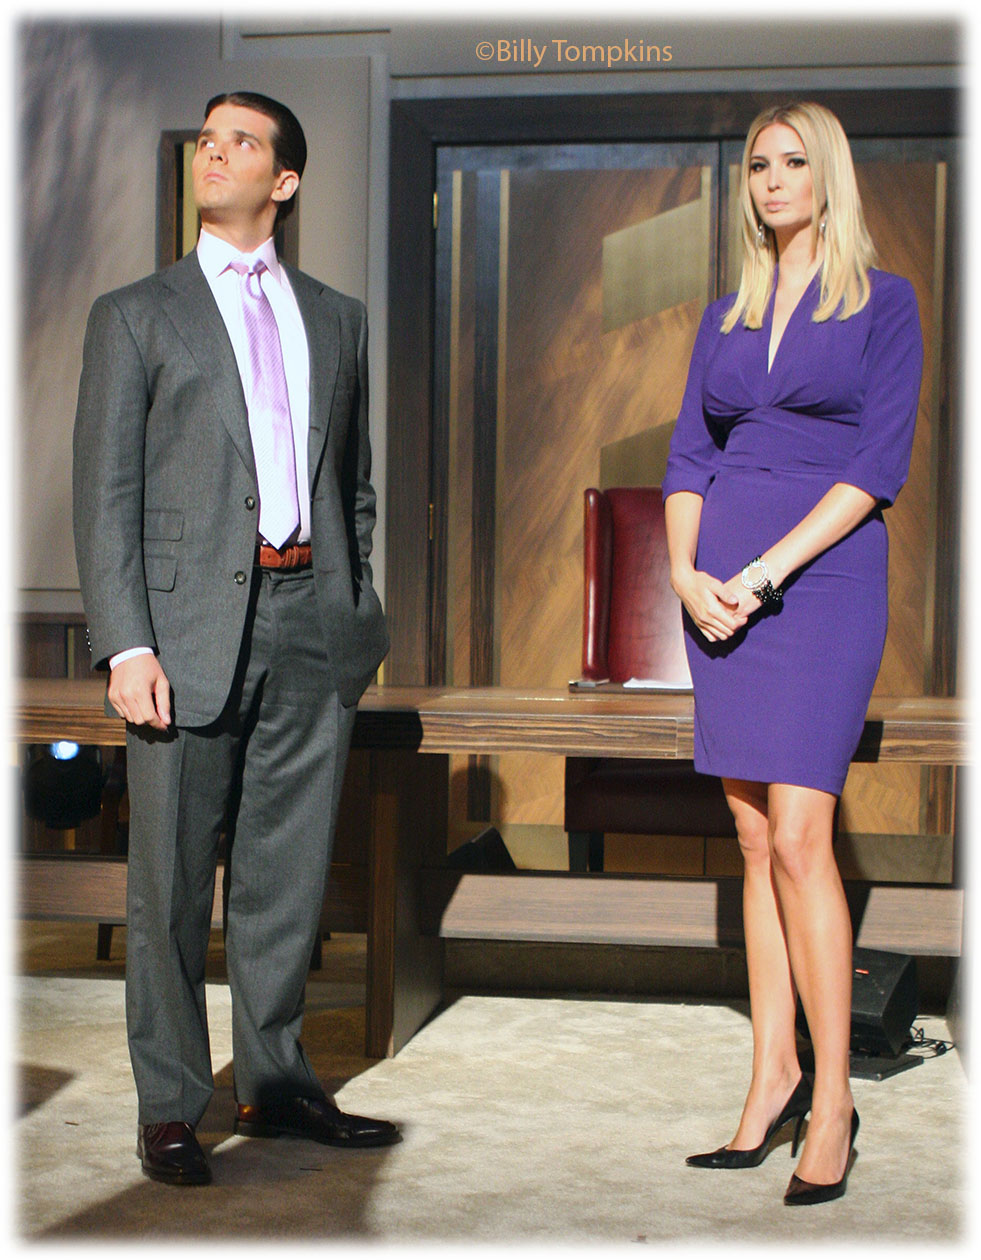 The Trump kids on the set of The Apprentice